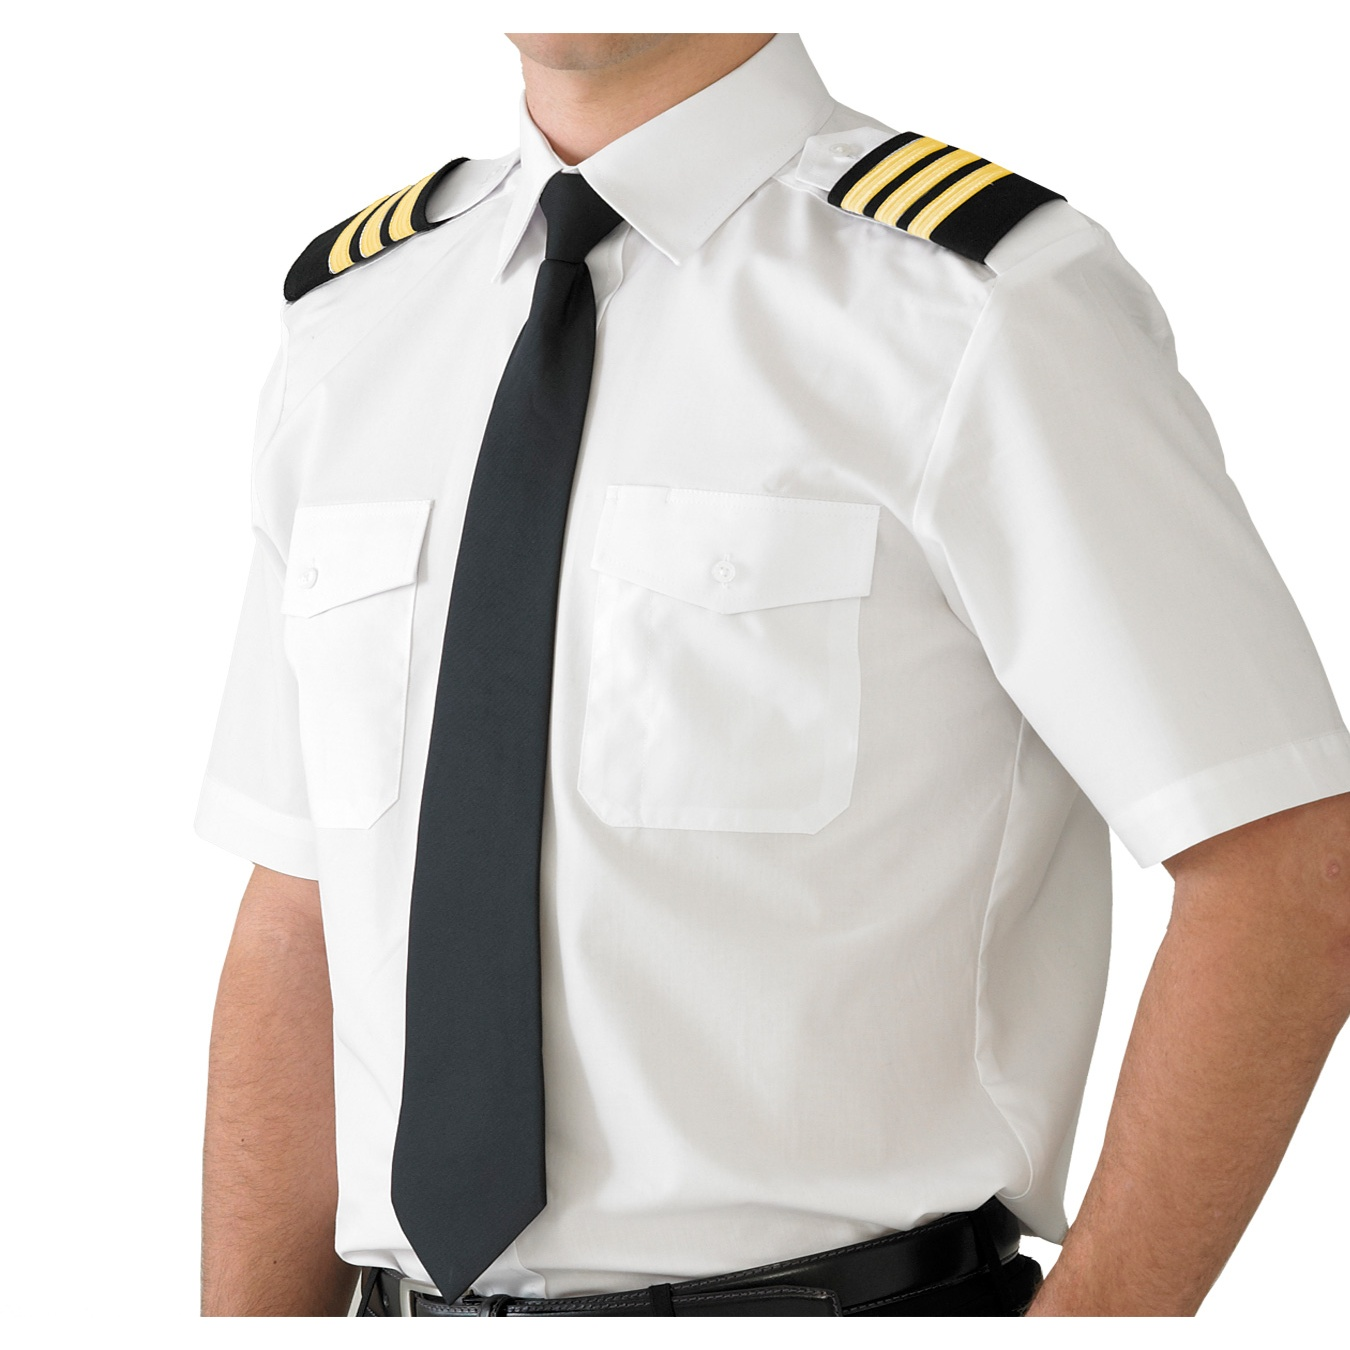 Pilot uniform uk